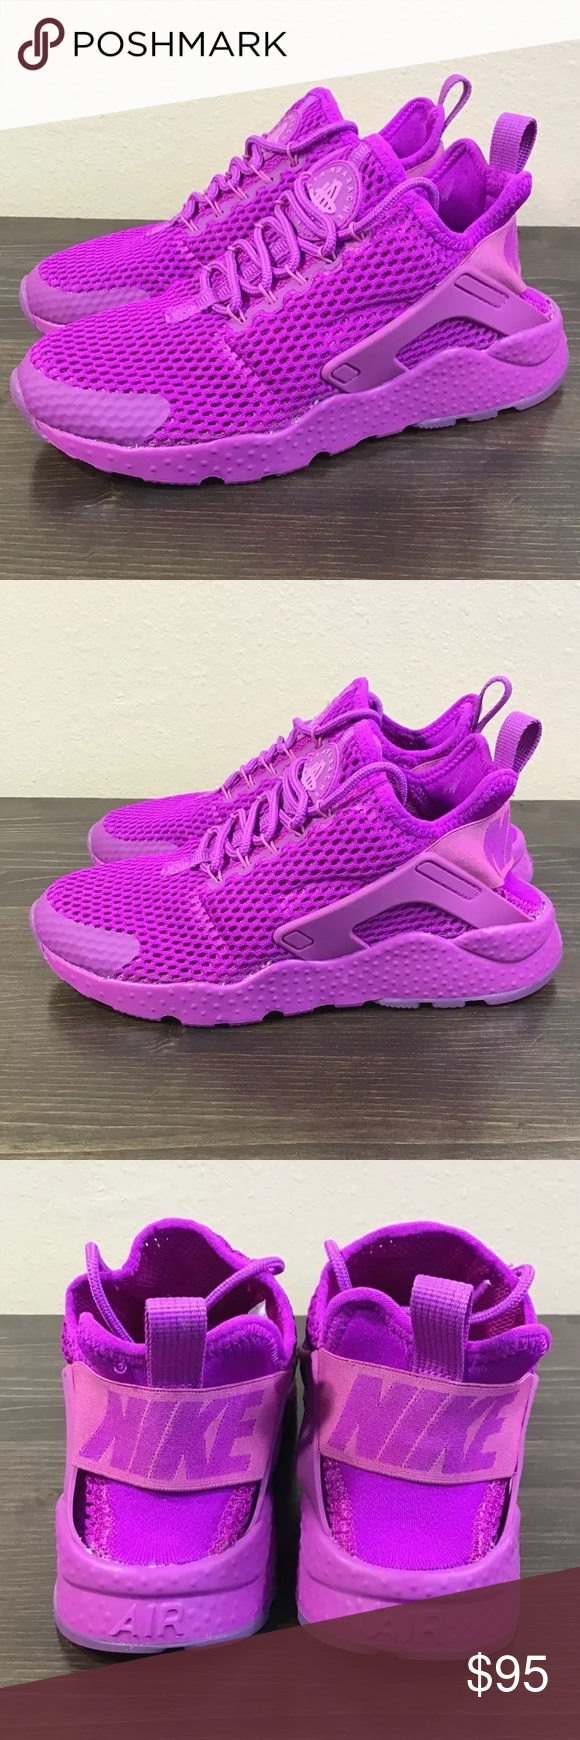 28905009c9099 Nike Air Huarache Run Ultra BR Violet Running Shoe Nike Air Huarache Ultra  BR Brand New without Box. Women s Size  5 The sides of the shoe show some  excess ...